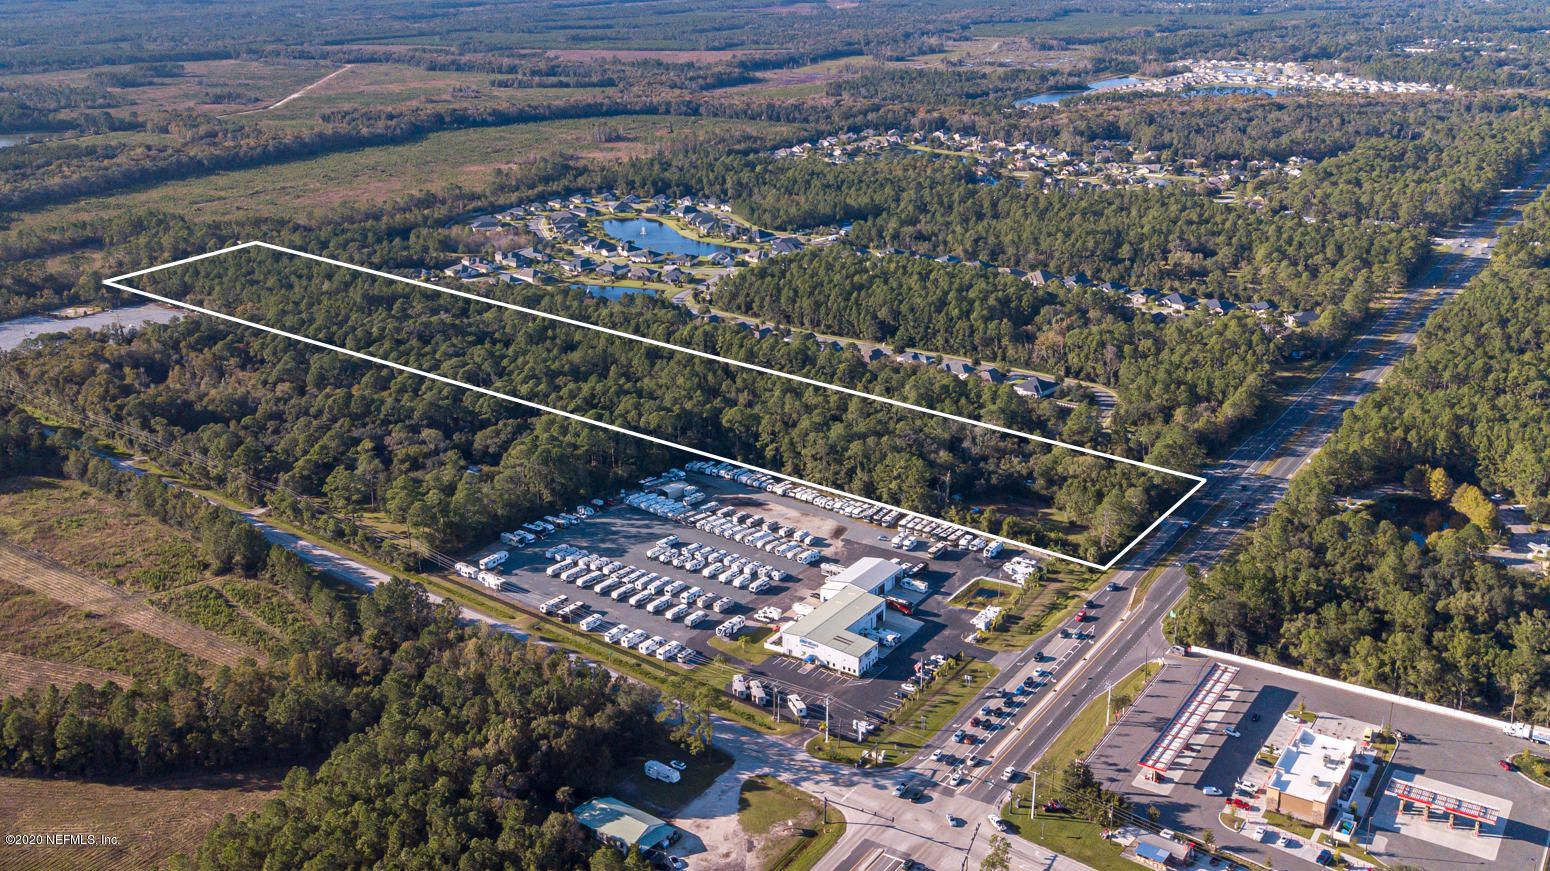 6695 US HIGHWAY 1, ST AUGUSTINE, FLORIDA 32086, ,Commercial,For sale,US HIGHWAY 1,1082753